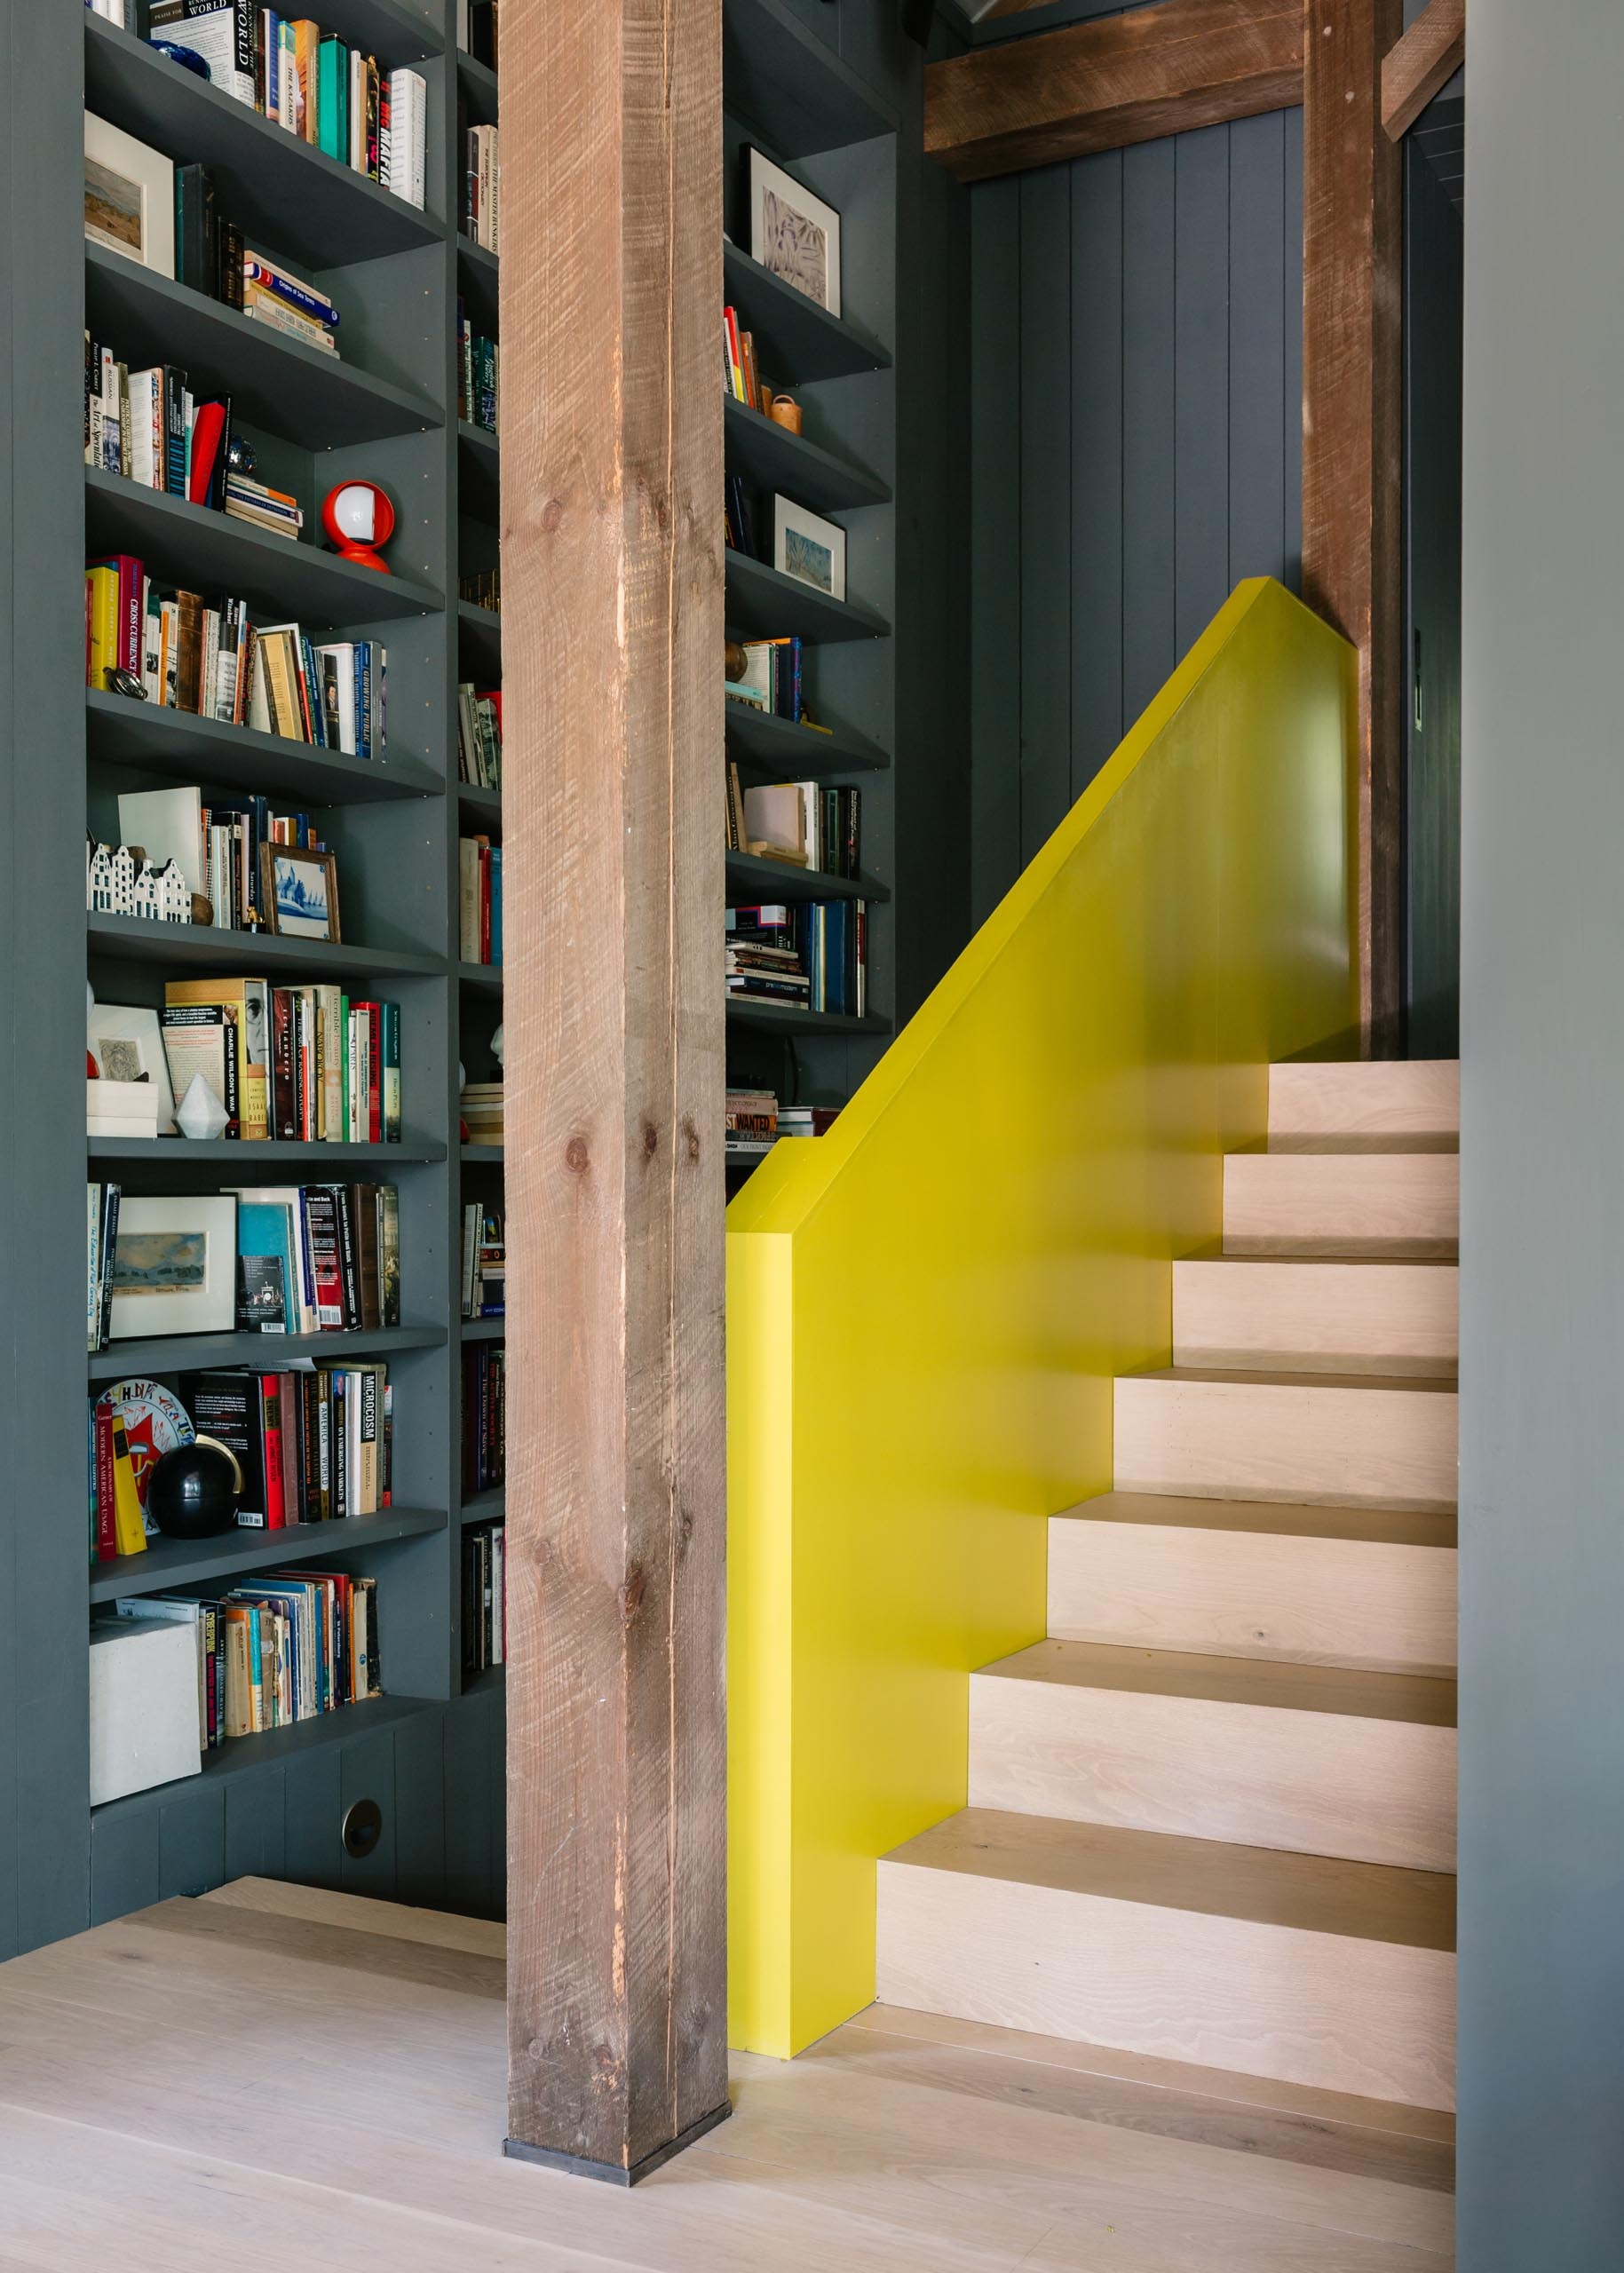 A barn-inspired home with custom bookshelves and a yellow handrail accent.